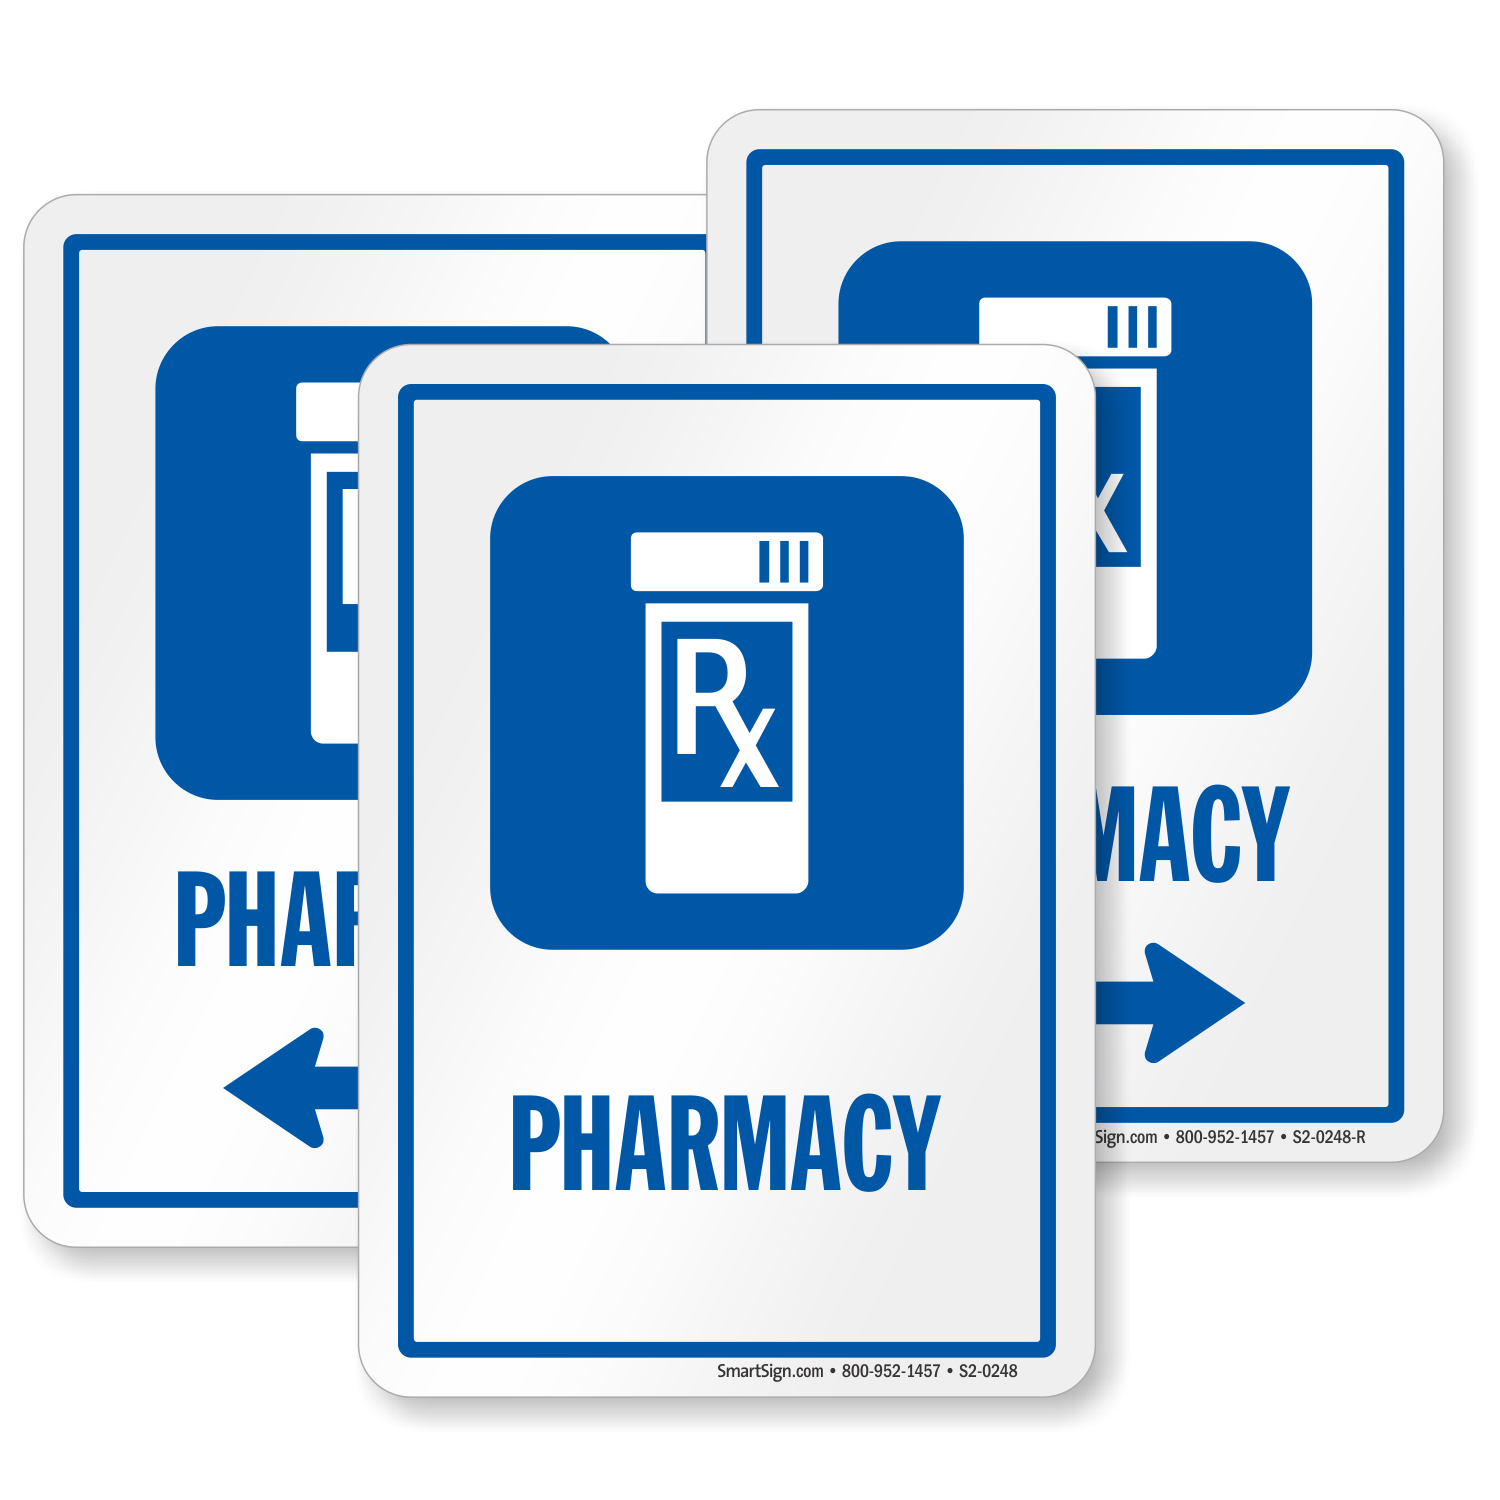 Pharmacist Sign Images - Reverse Search